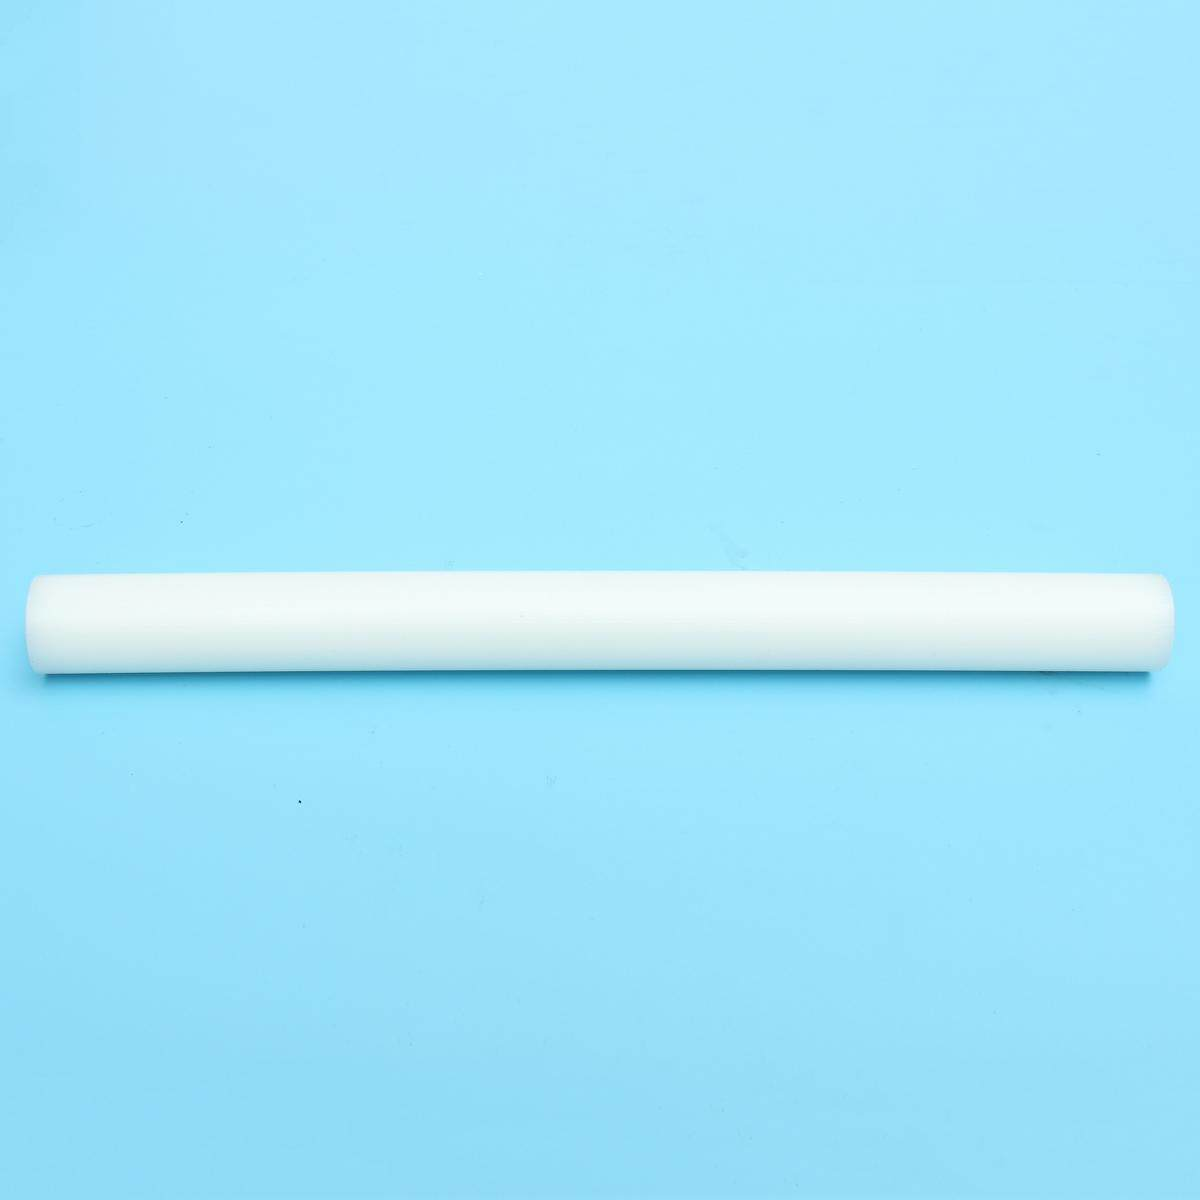 White Hdpe (high Density Polyethylene) Plastic Rod 1 X 12 /d X L Bar Natural - Intl By Freebang.